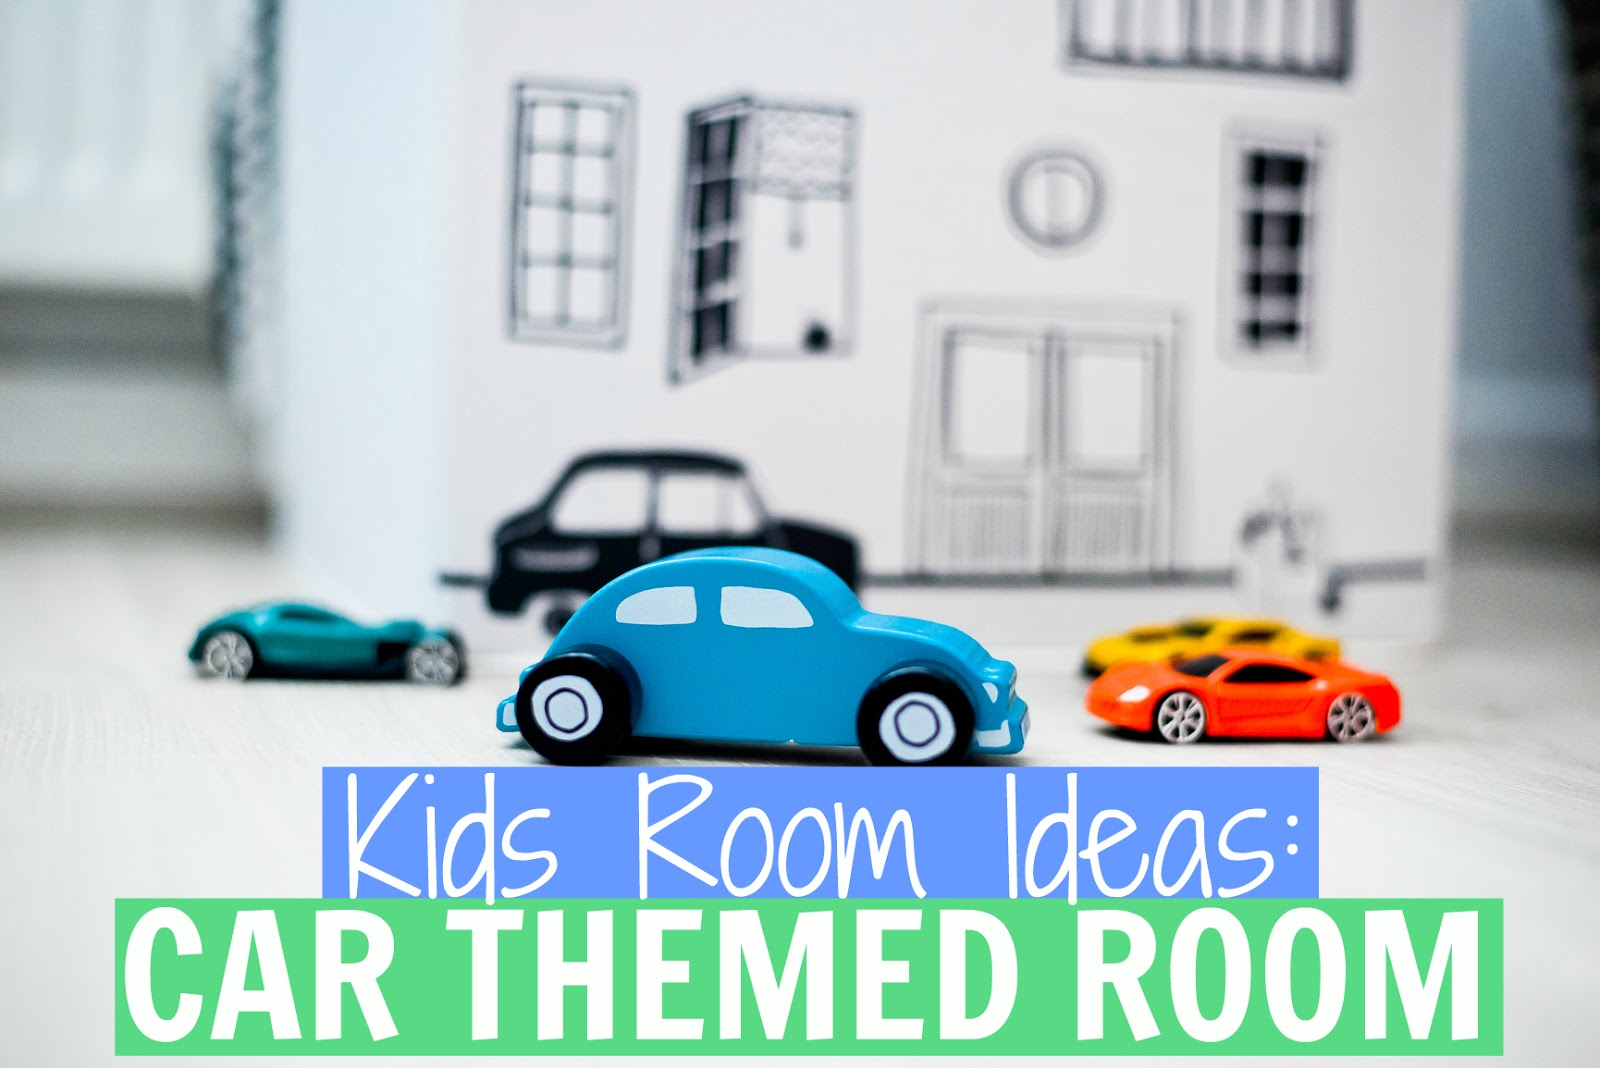 car bedroom car themed room kids car room